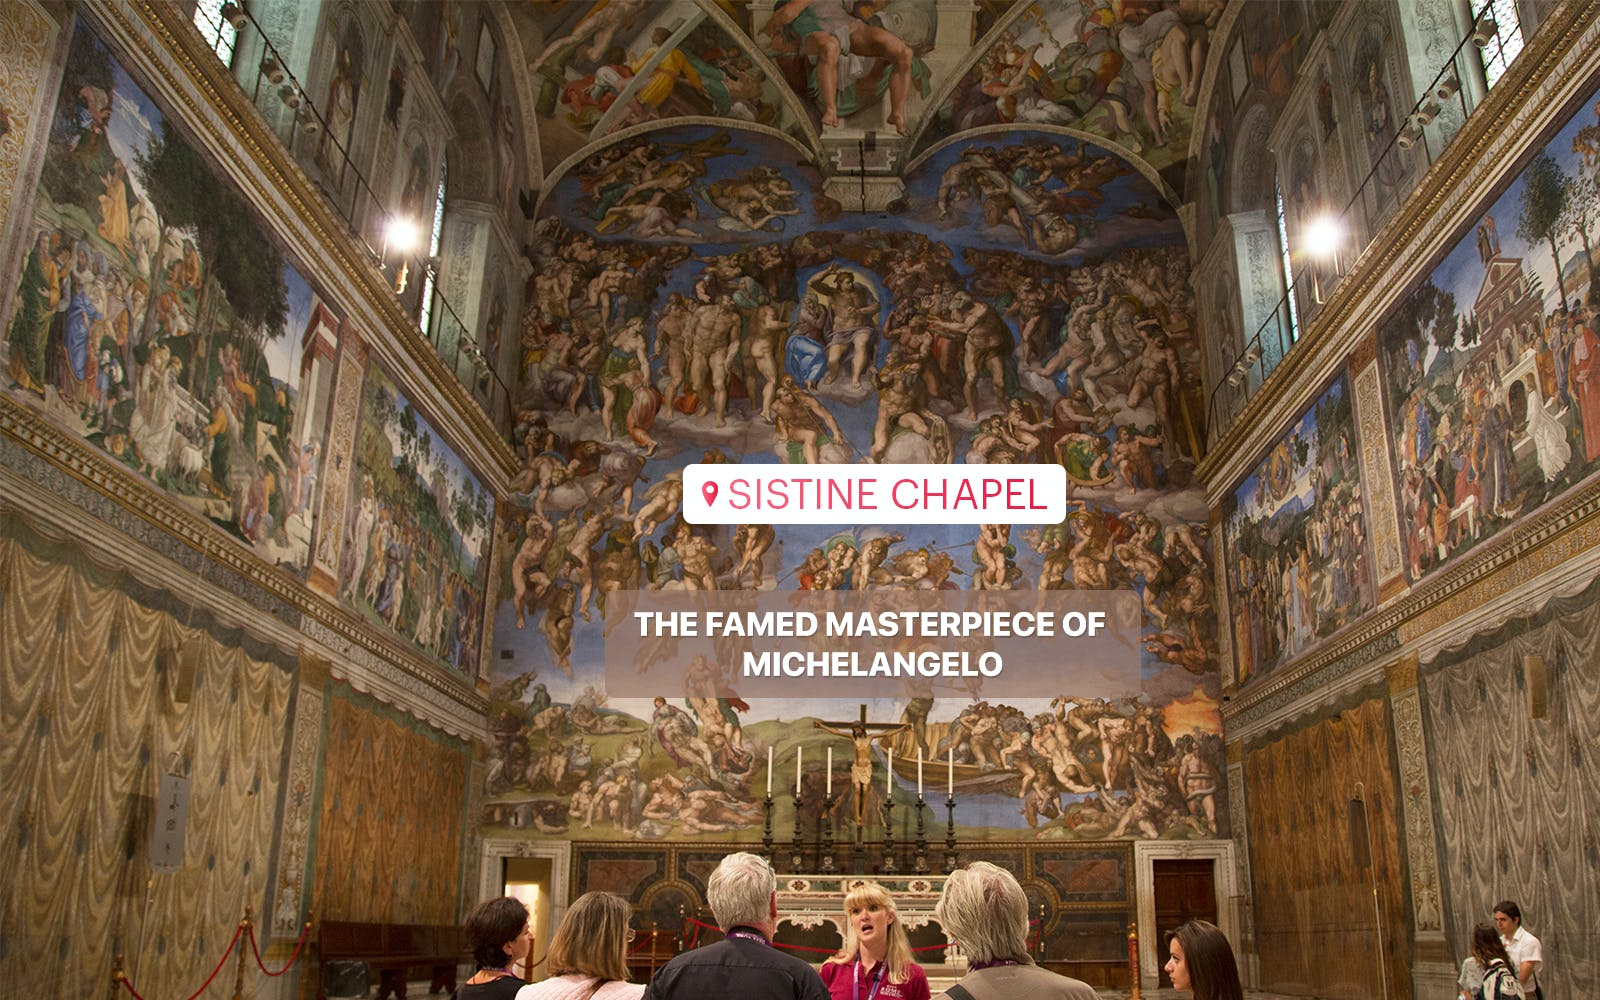 skip the line tickets to the vatican museums and sistine chapel-10